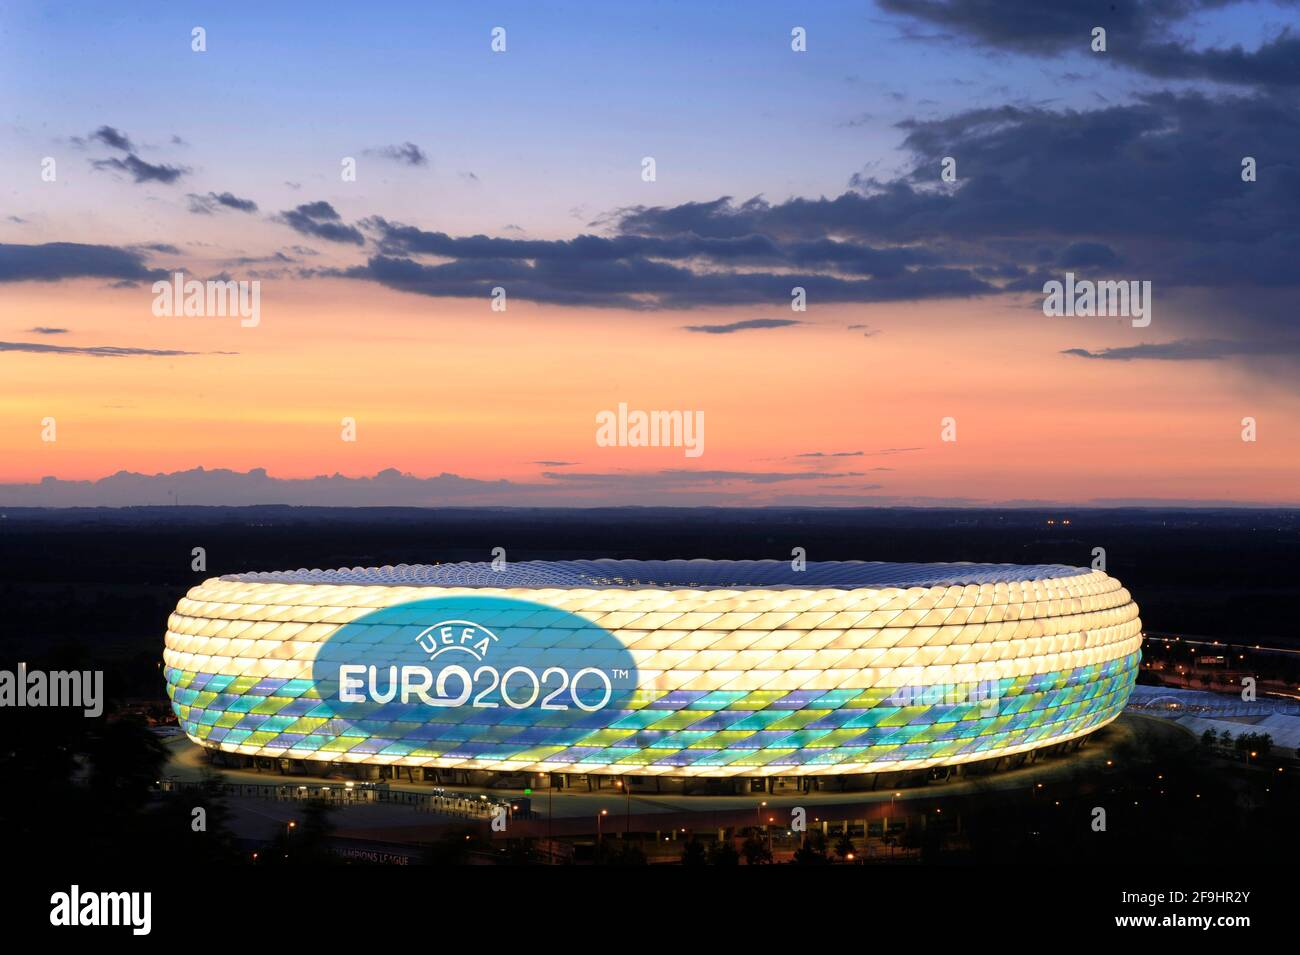 """European Championship hosts Munich - UEFA demands audience guarantee! The European Football Union has increased the pressure on the German EM location Munich and set a deadline for a spectator guarantee. """"Additional information"""" on the plans should be submitted by the executive meeting on April 19th. Archive photo: EURO 2020 comes after Munich . Muenchen is one of 13 venues for the 2020 European Championship. This was announced by the European football association UEFA on Friday in Geneva. In the Allianz Arena three preliminary round matches and a quarter-finals will be played in six years. P Stock Photo"""